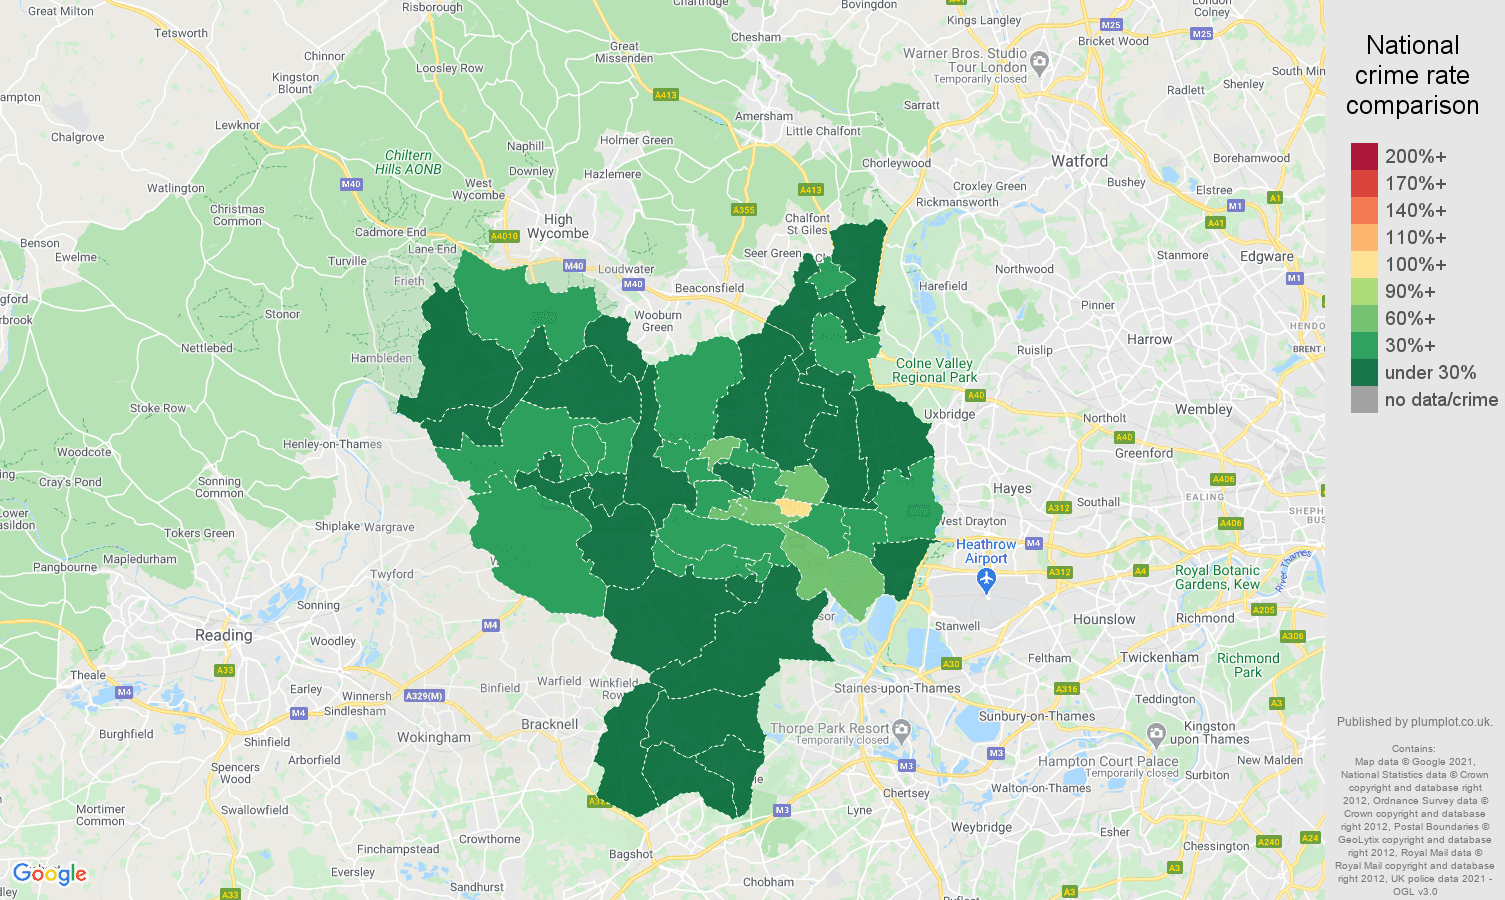 Slough antisocial behaviour crime rate comparison map